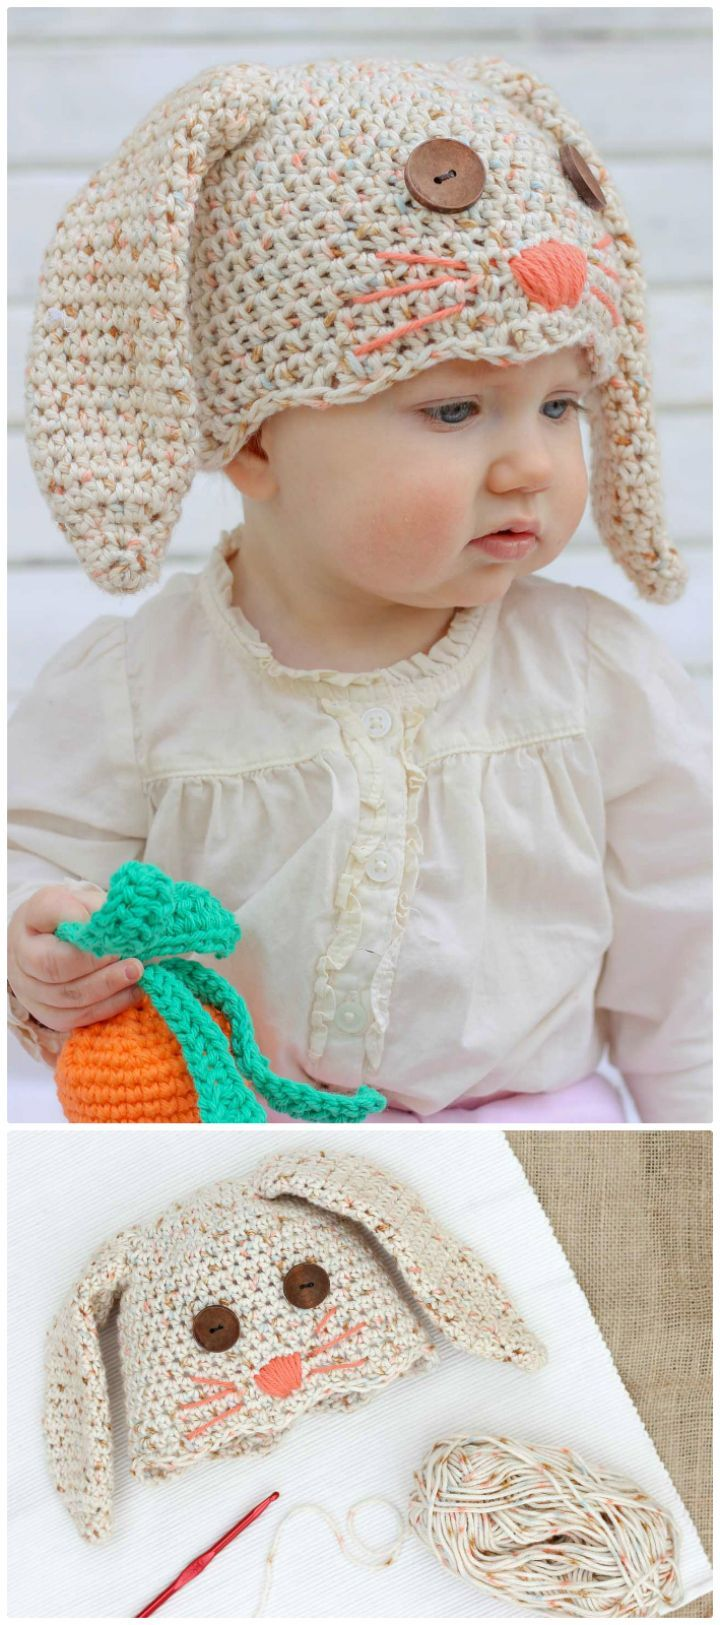 63 Free Crochet Bunny Amigurumi Patterns - Page 3 of 6 | Gorros ...